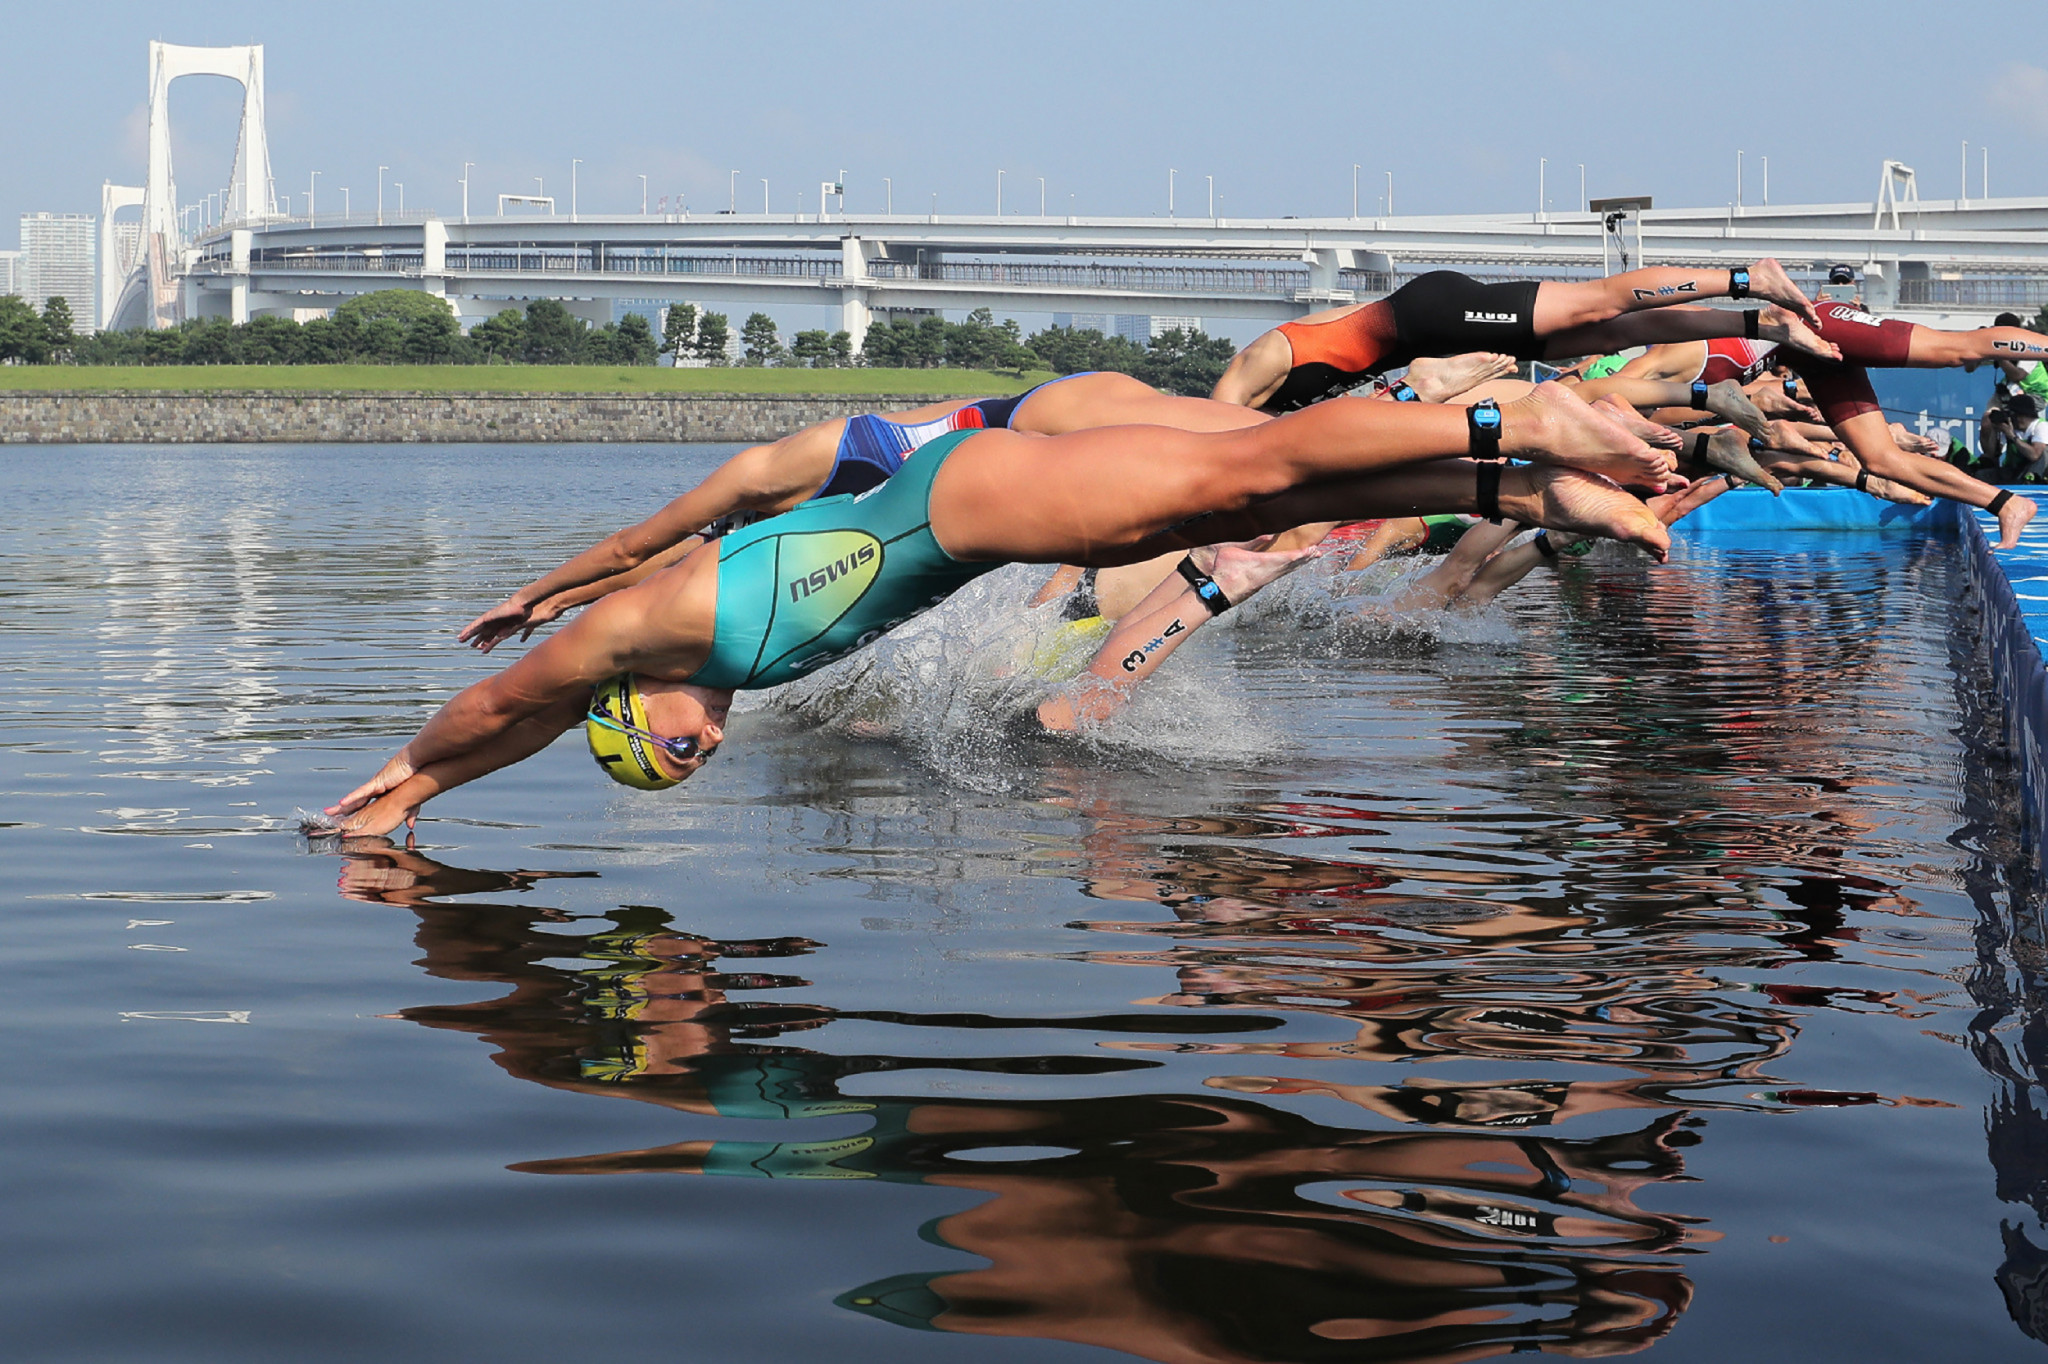 The ASP aims to help athletes in their preparations and qualification for the Tokyo 2020 Olympic Games and beyond ©Getty Images